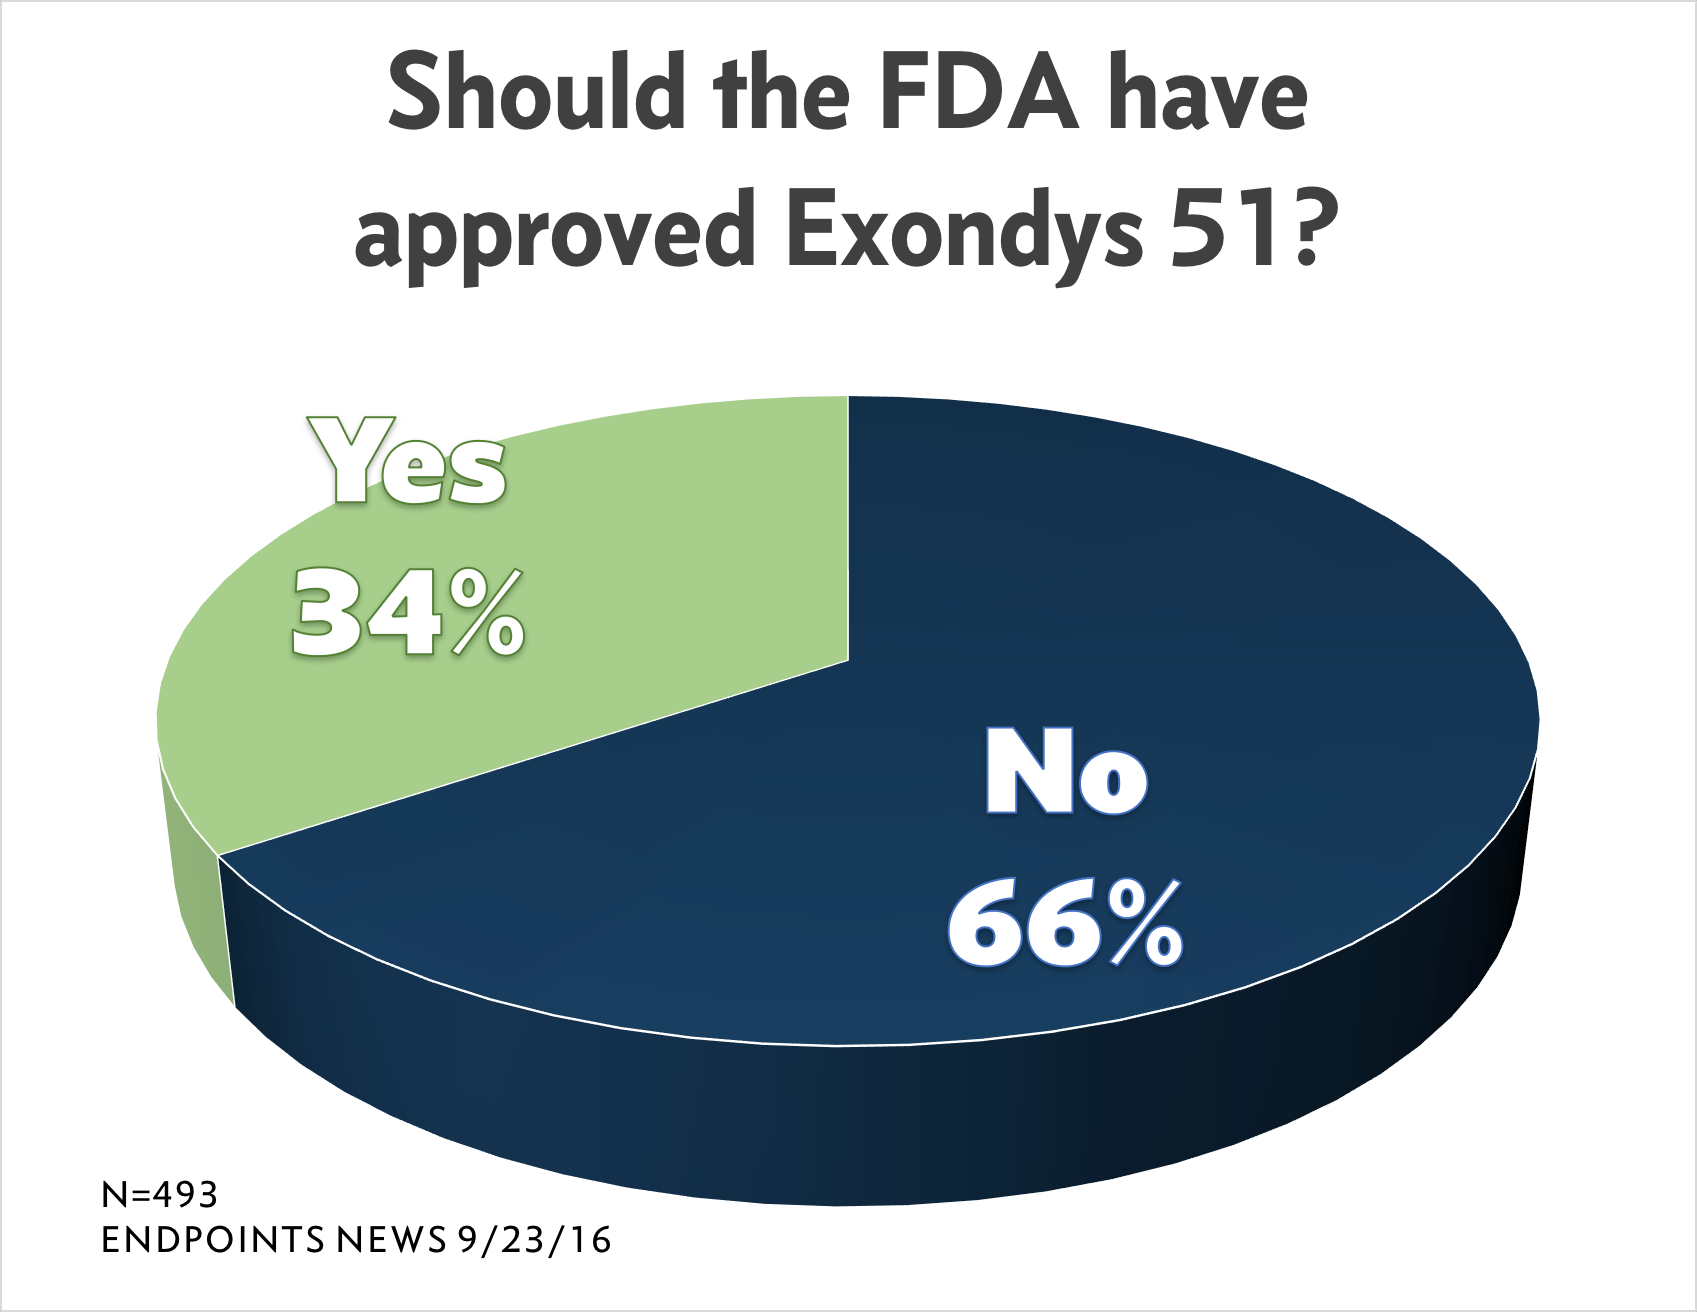 FDA shouldn't have approved Exondys51, says biopharma industry